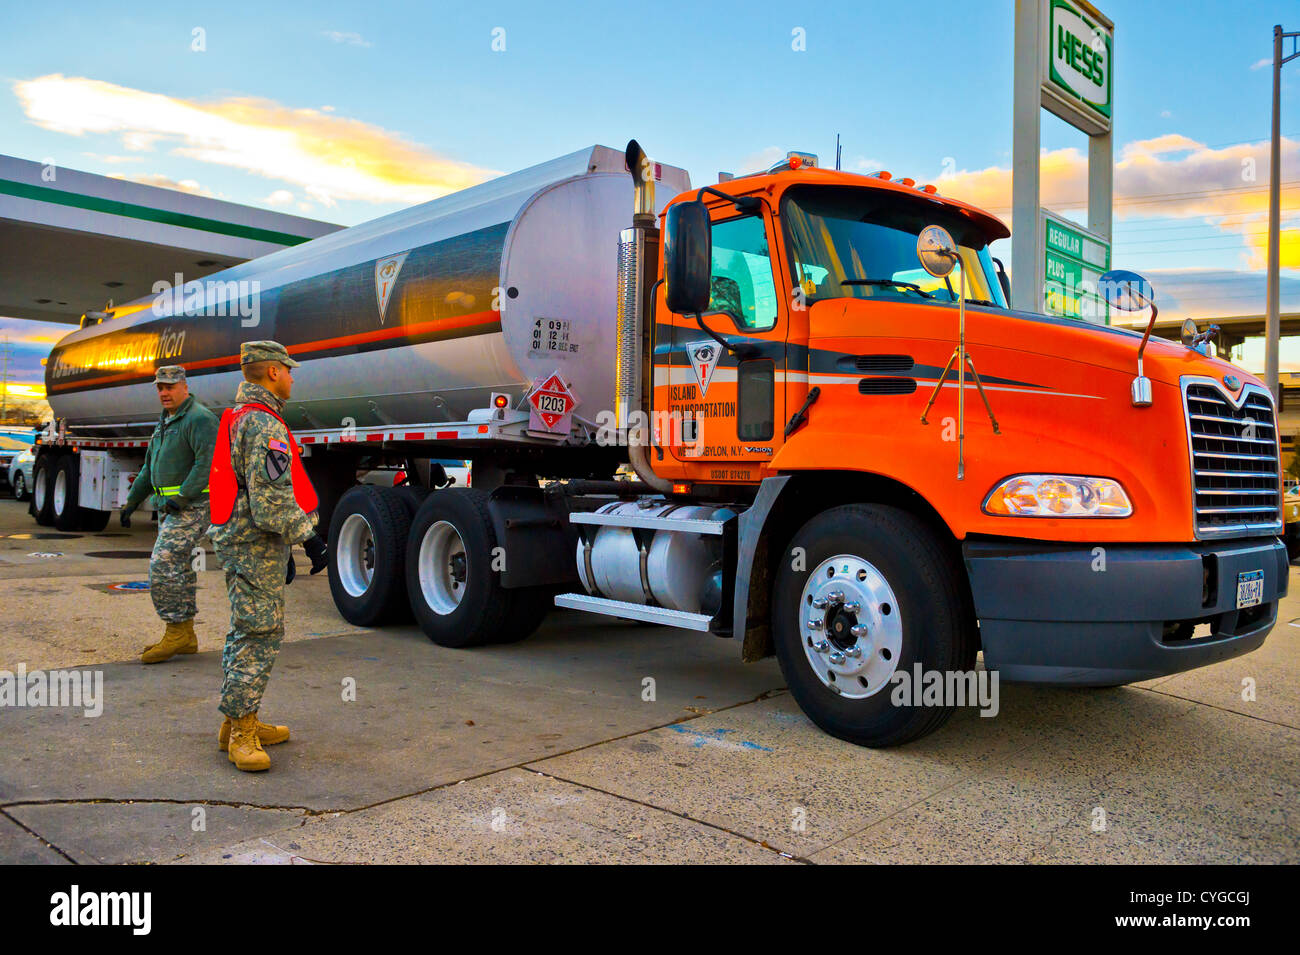 Nov. 3, 2012 - Merrick, New York, U.S. - A gas truck arrives at the Merrick Hess, one of the Long Island gas stations - Stock Image